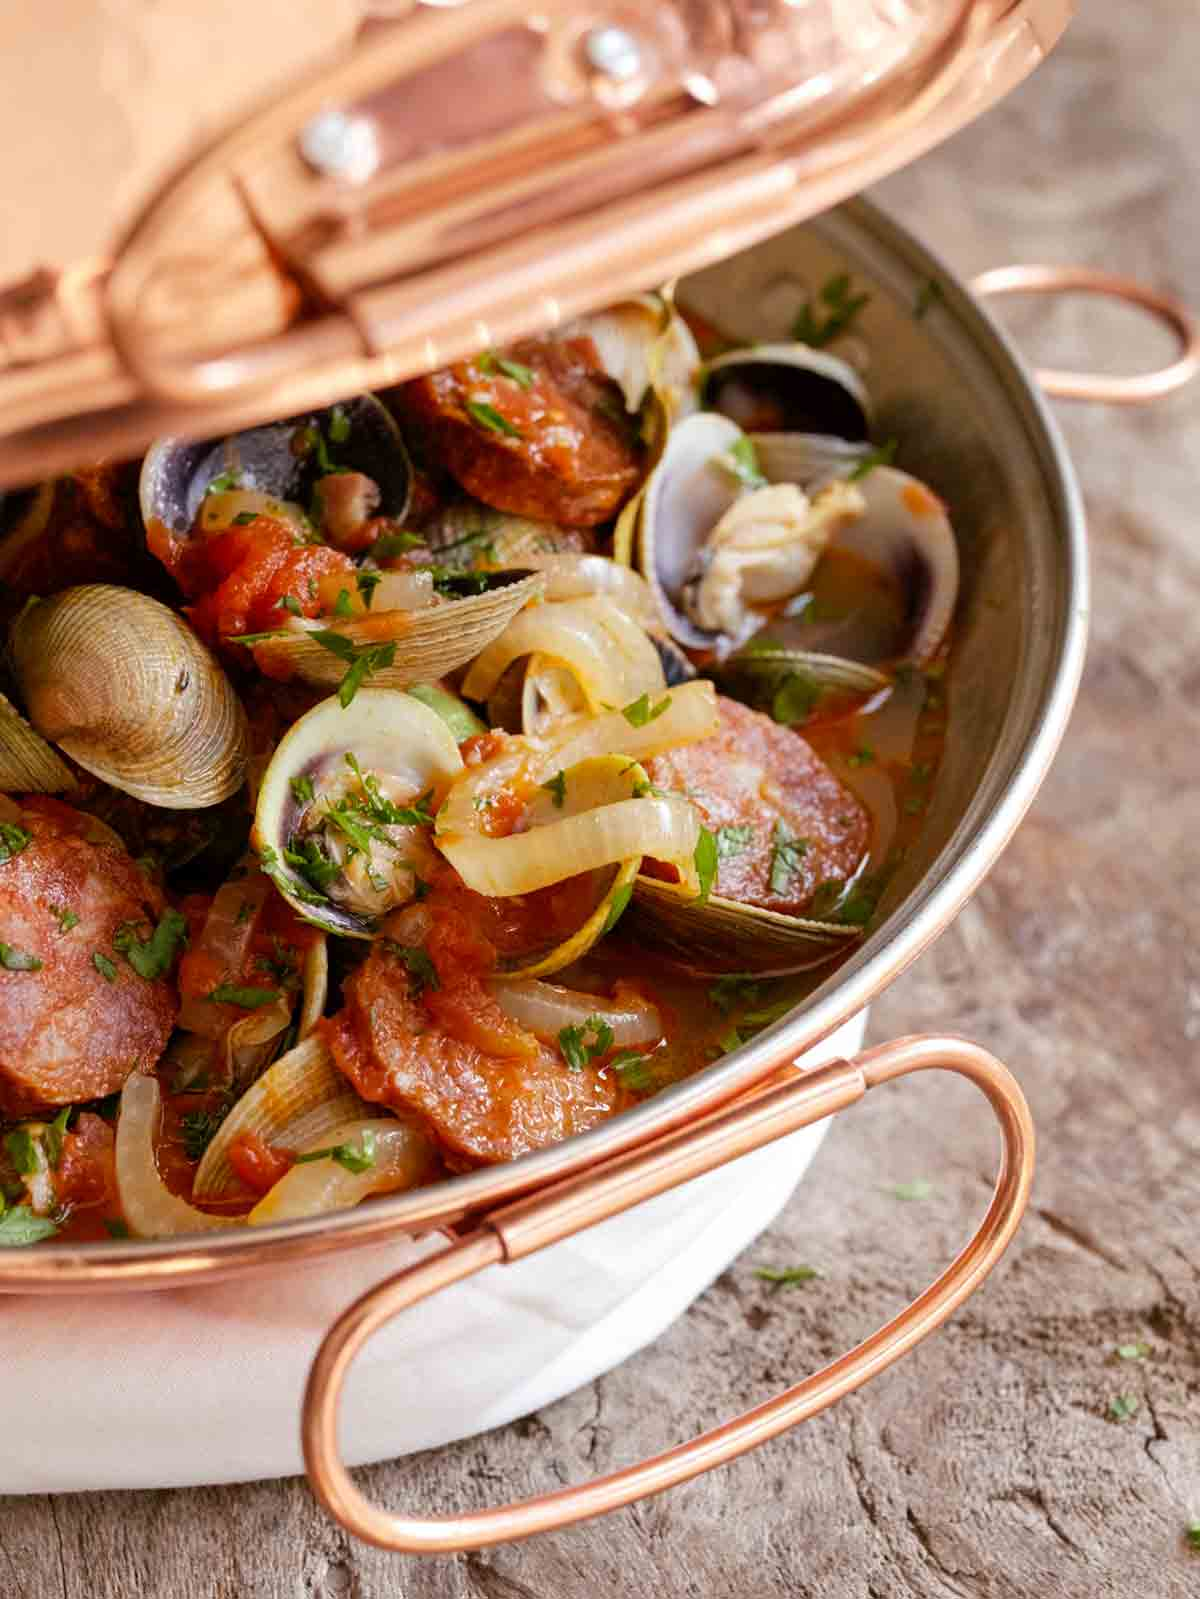 A cataplana with slices of spicy chouriço sausage and sweet clams in a tomato-onion broth.